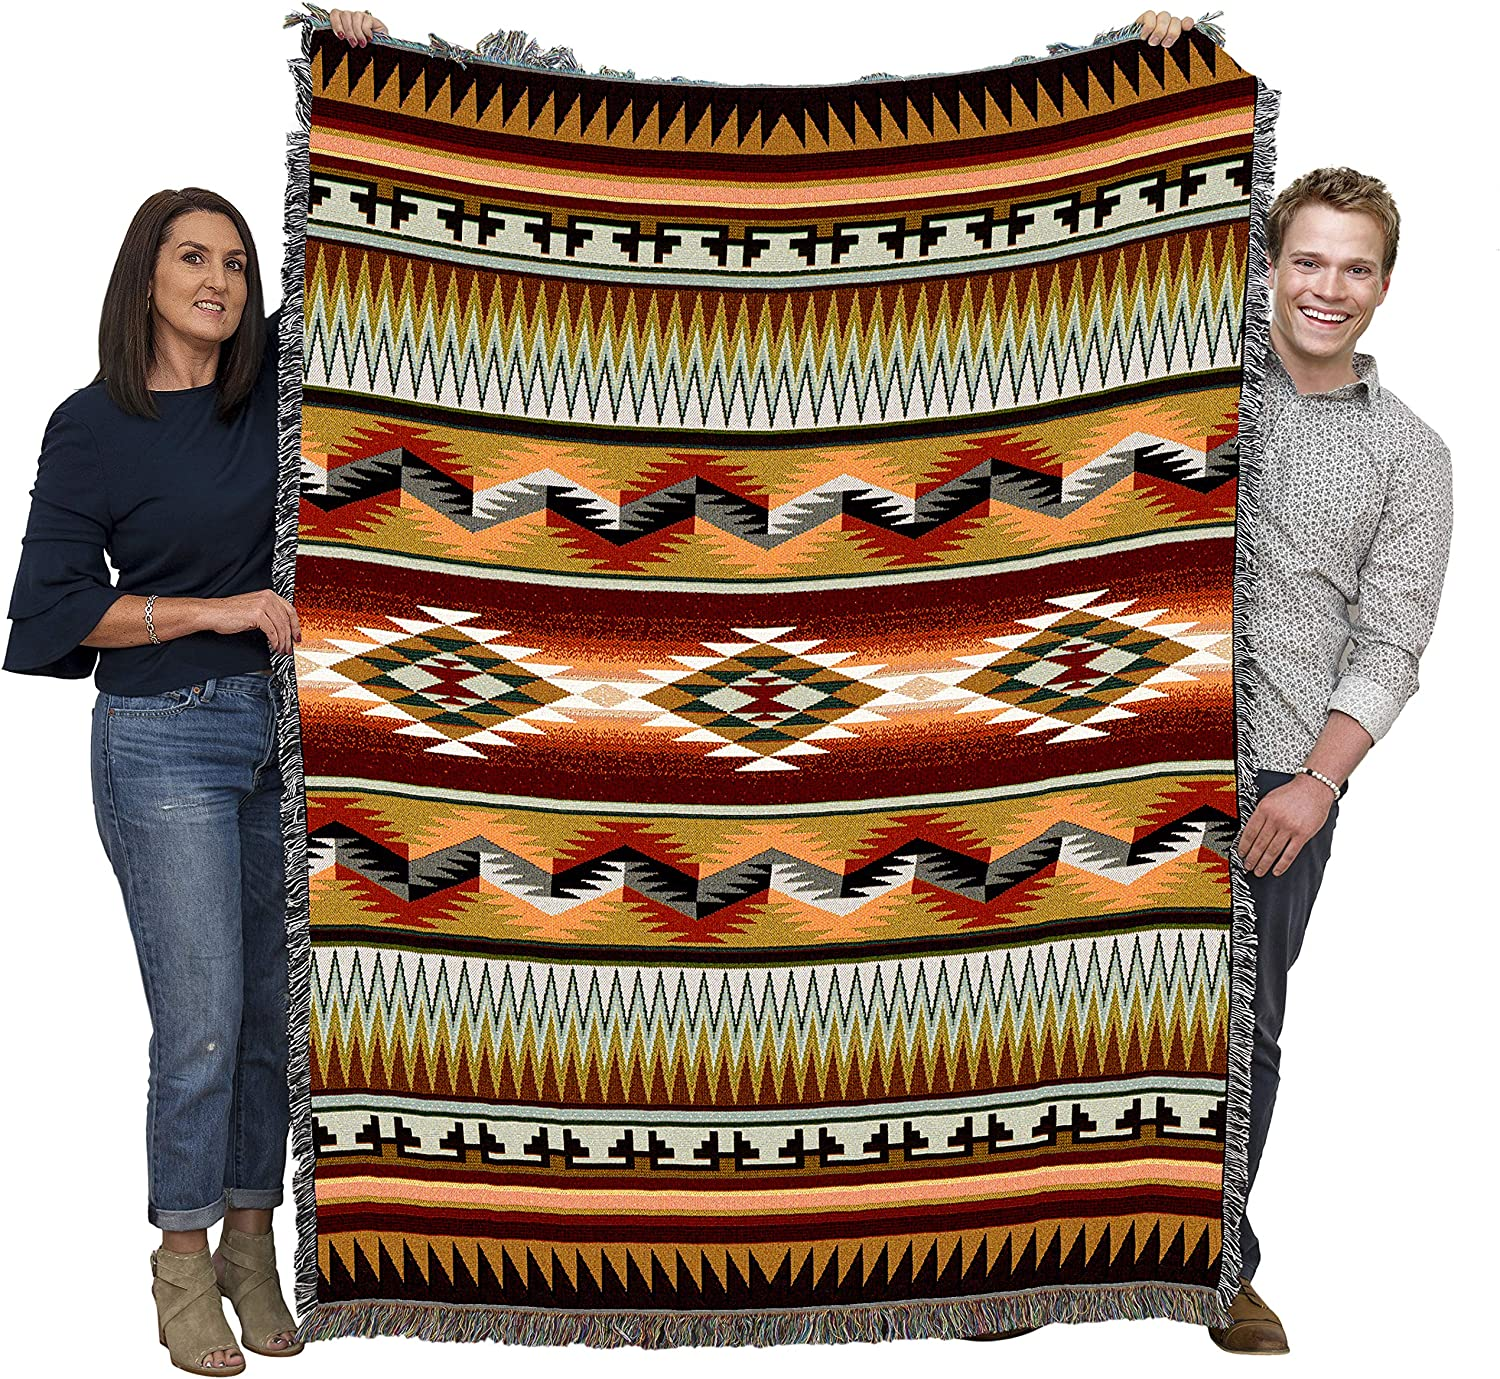 B001IY0DZY Pure Country Weavers Large Southwest Blanket 100% Cotton Woven Large Soft Comforting, Iconic Fringe Design, Native American Inspired Pattern, Tribal Camp Throw Made in USA (72x54) A1H2eJPfOnL